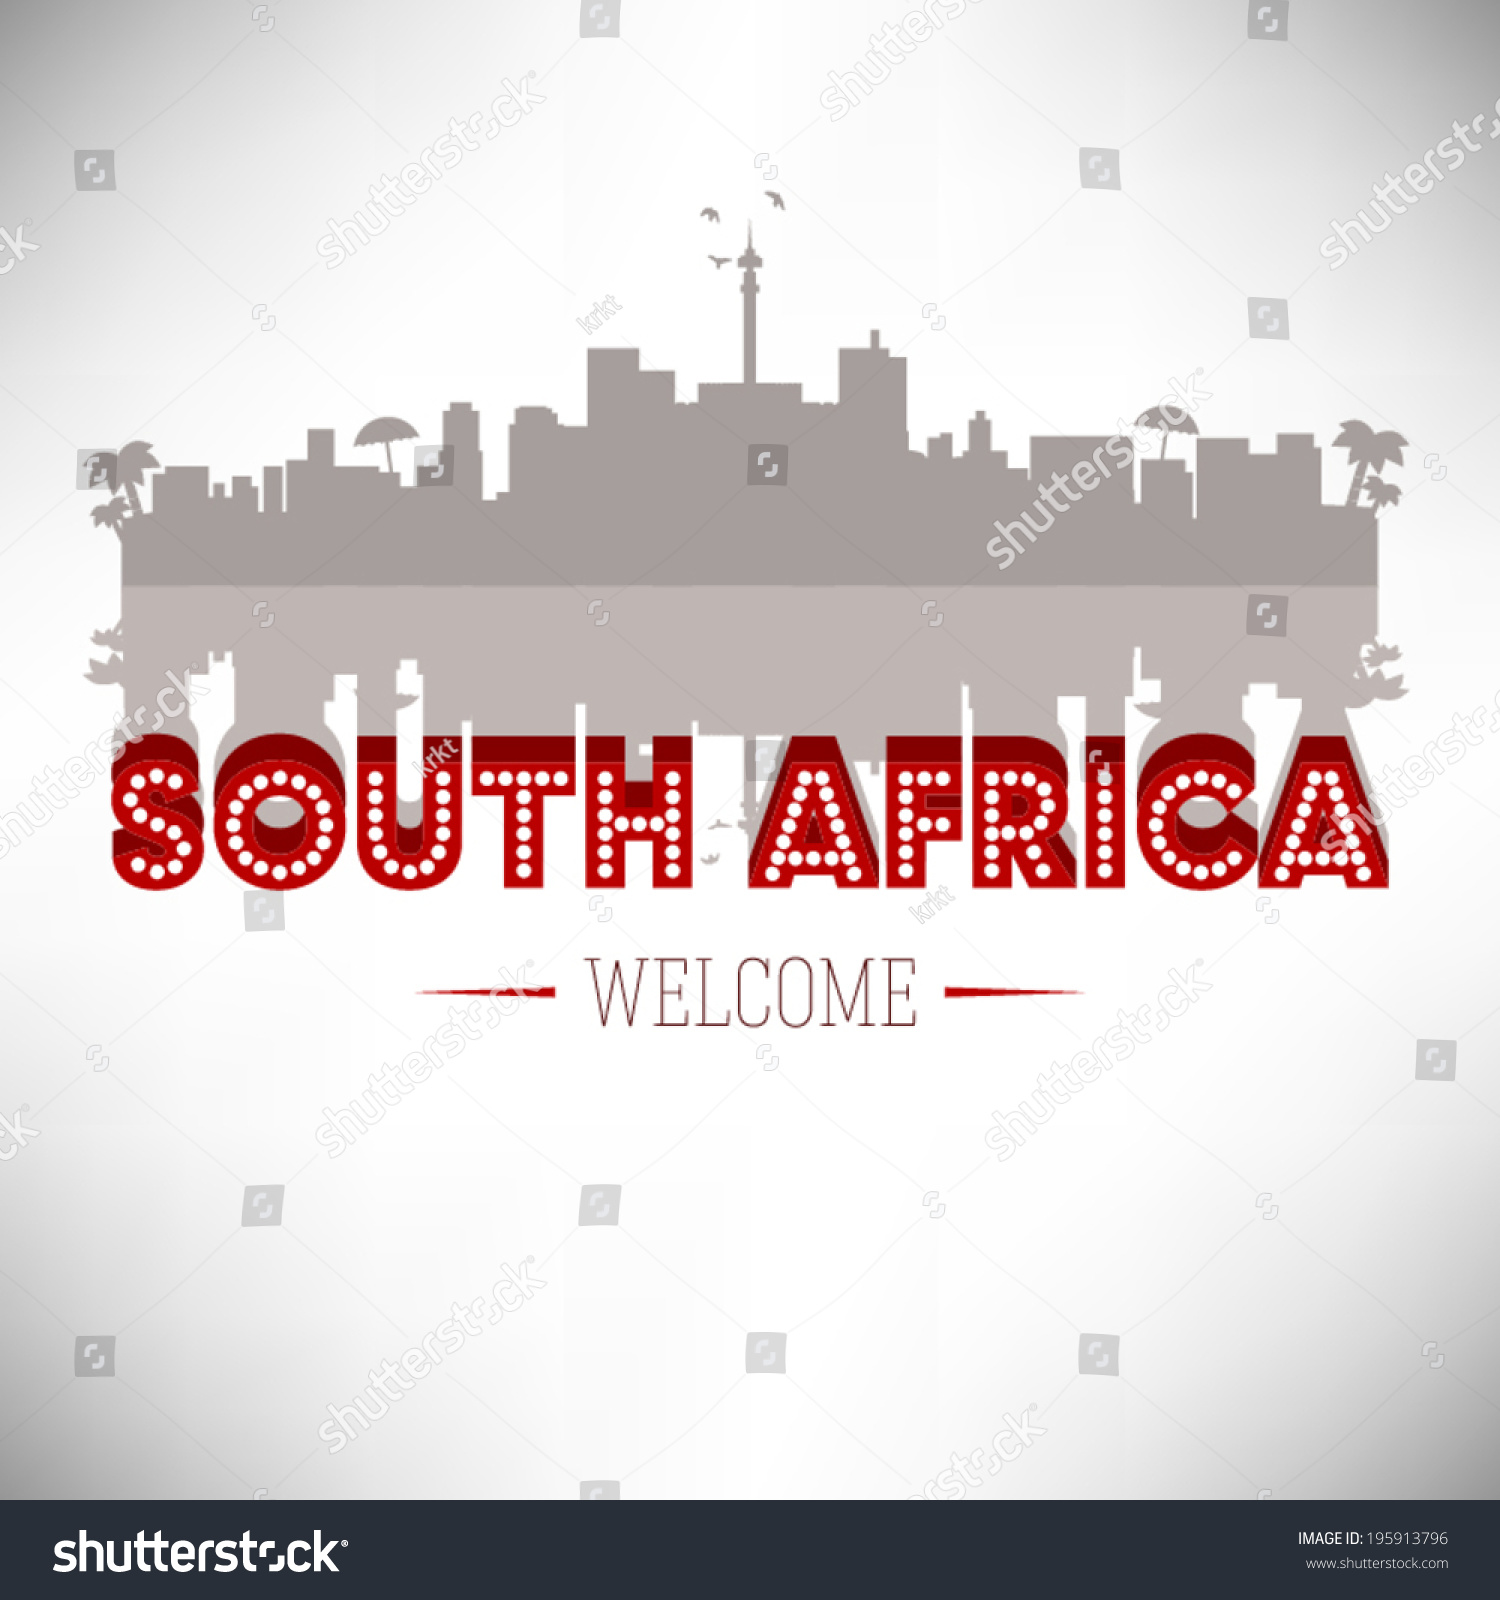 South Africa Greeting Card Vector Design Stock Vector 195913796